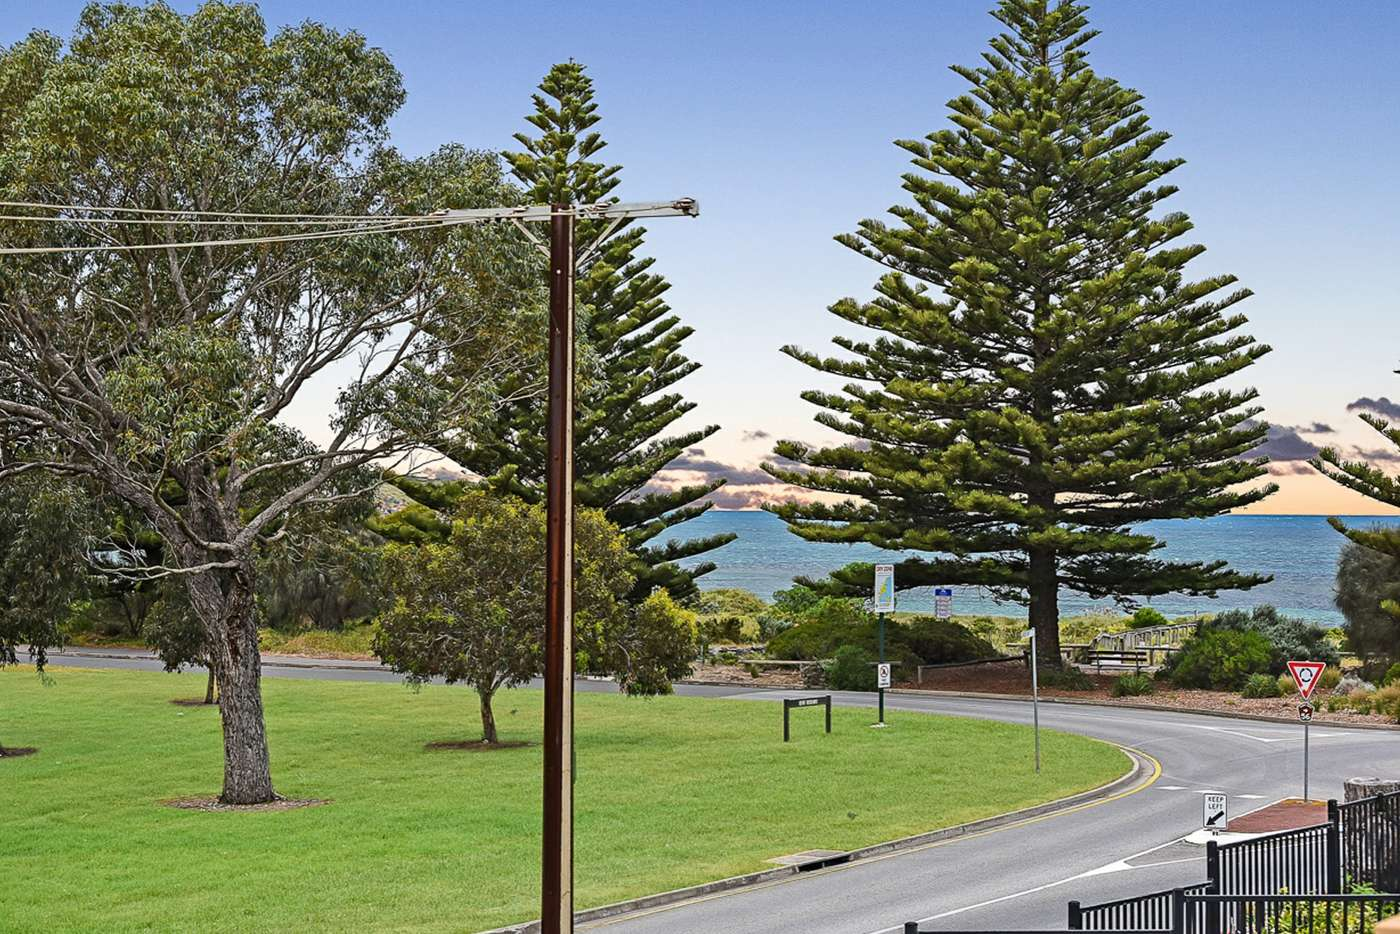 Main view of Homely unit listing, 2/3 Harborview Tce, Encounter Bay SA 5211